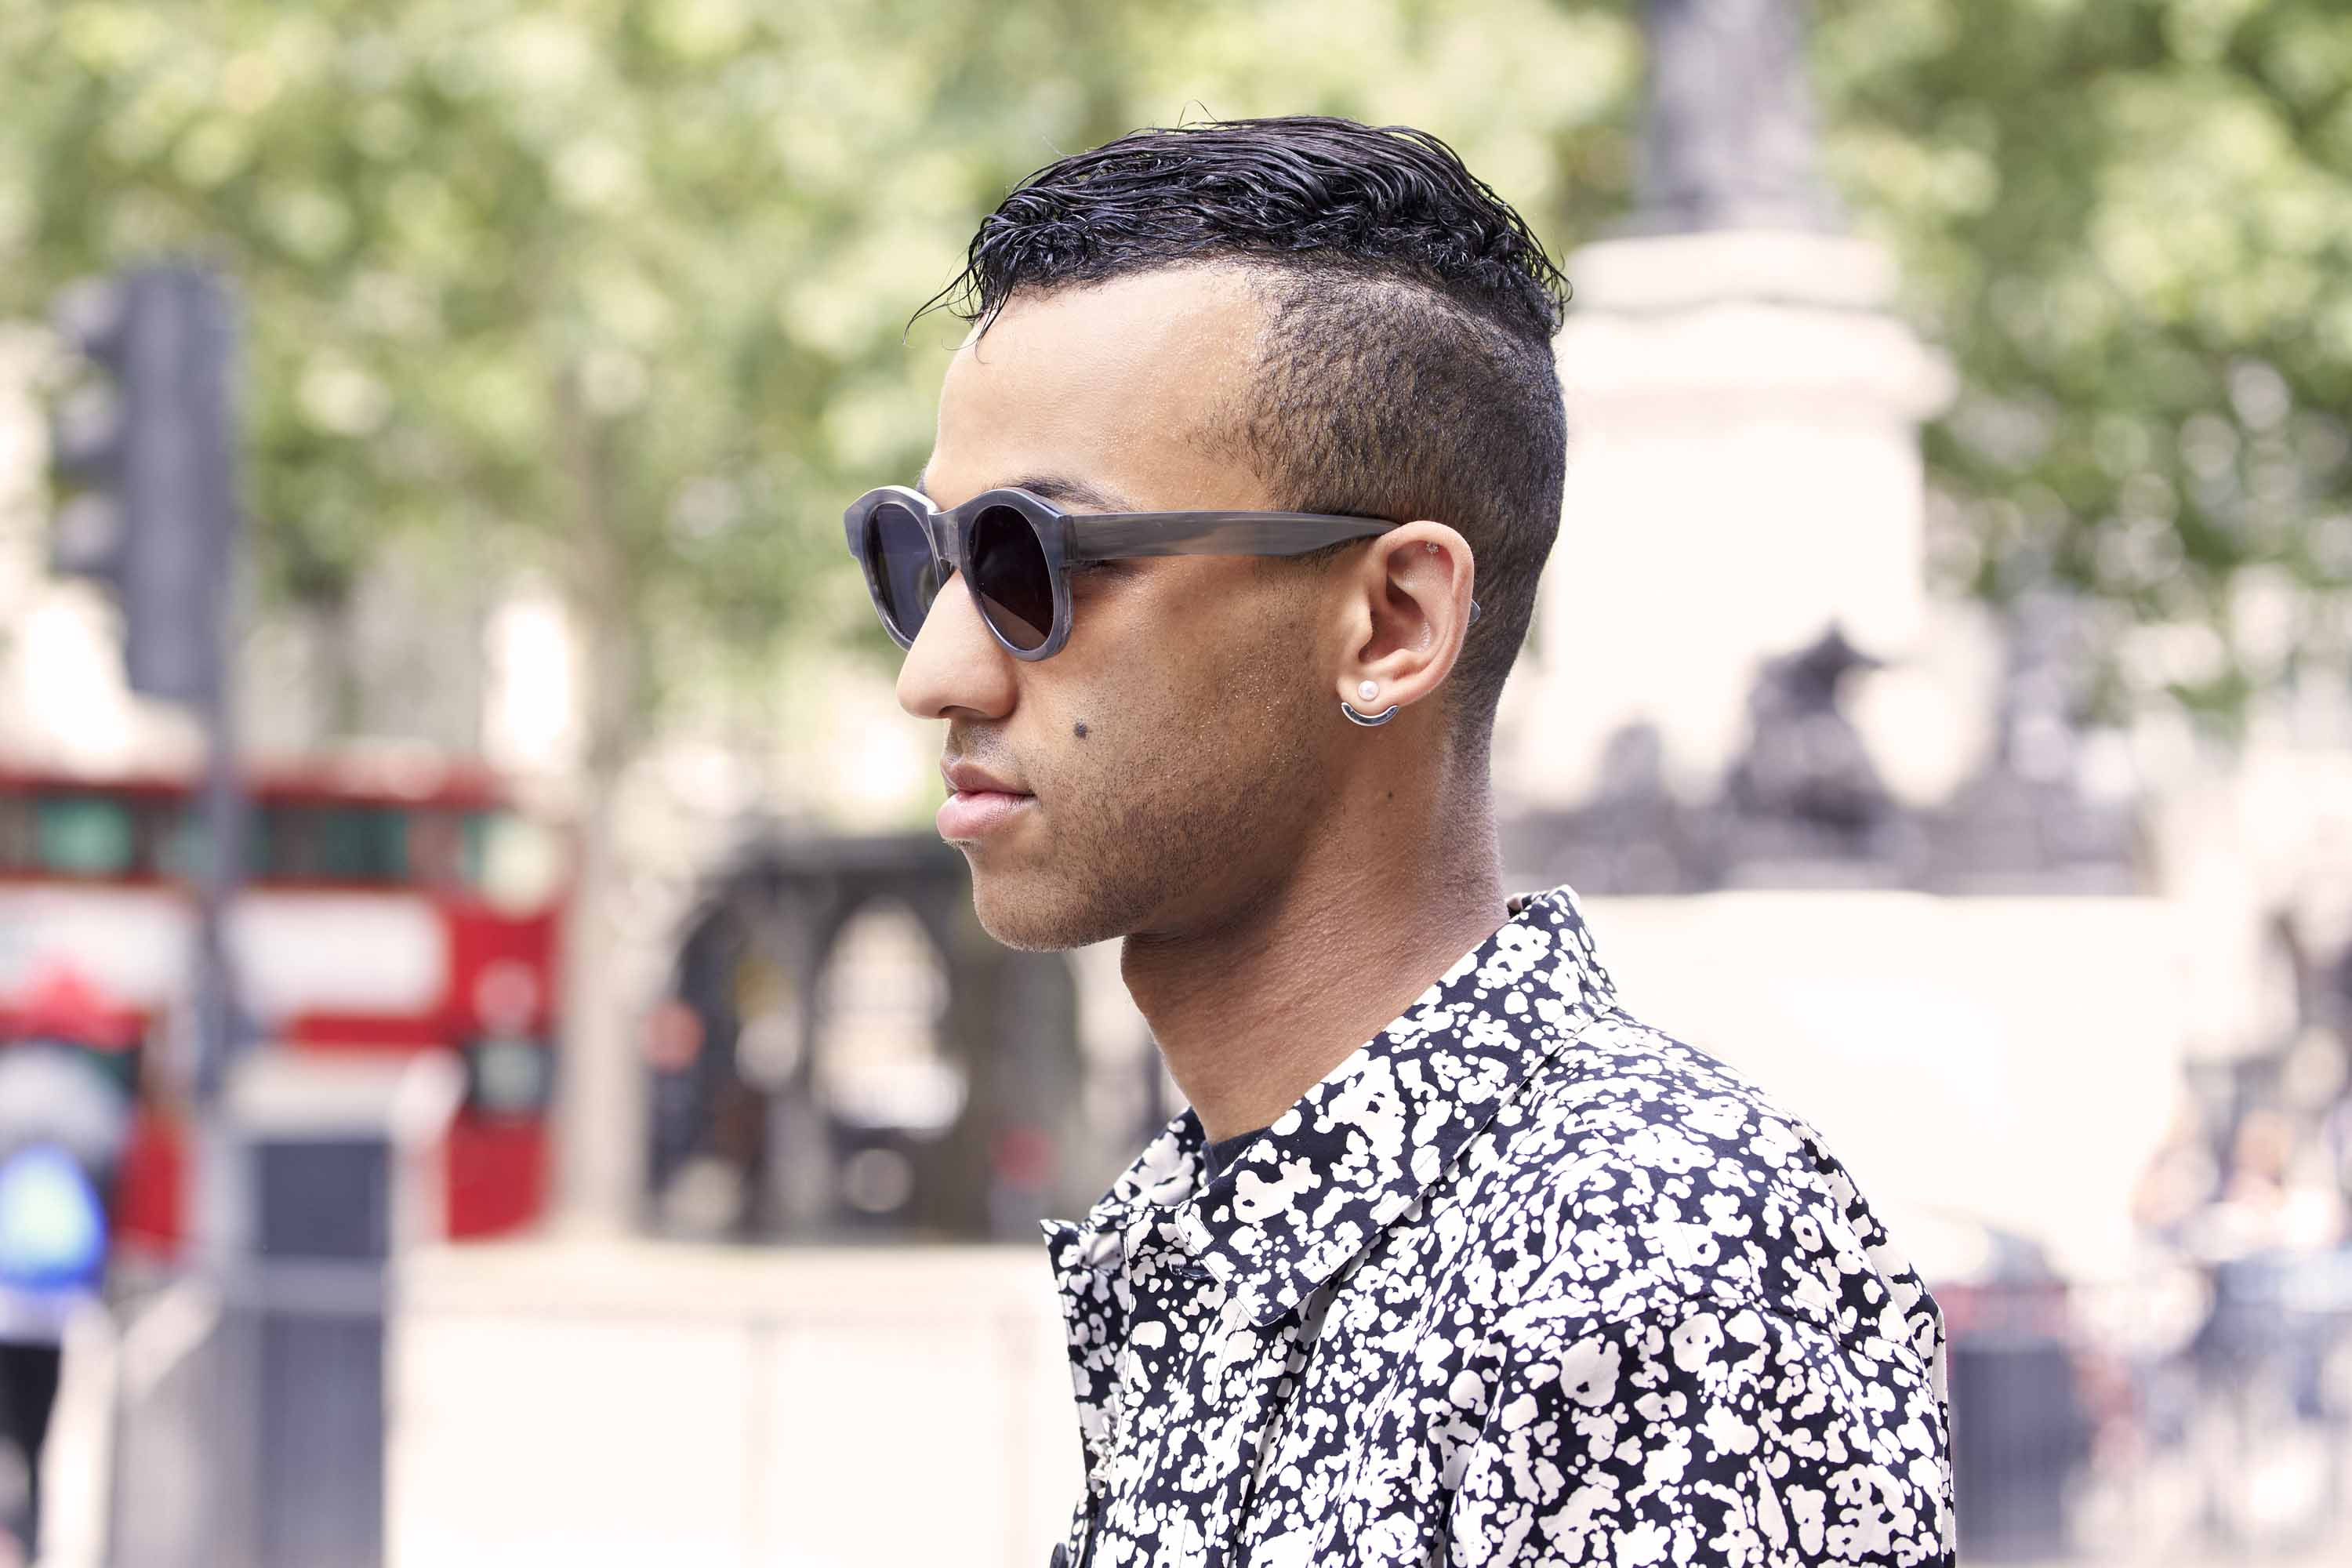 Mohawk hairstyle: guy with Mohawk-inspired cut